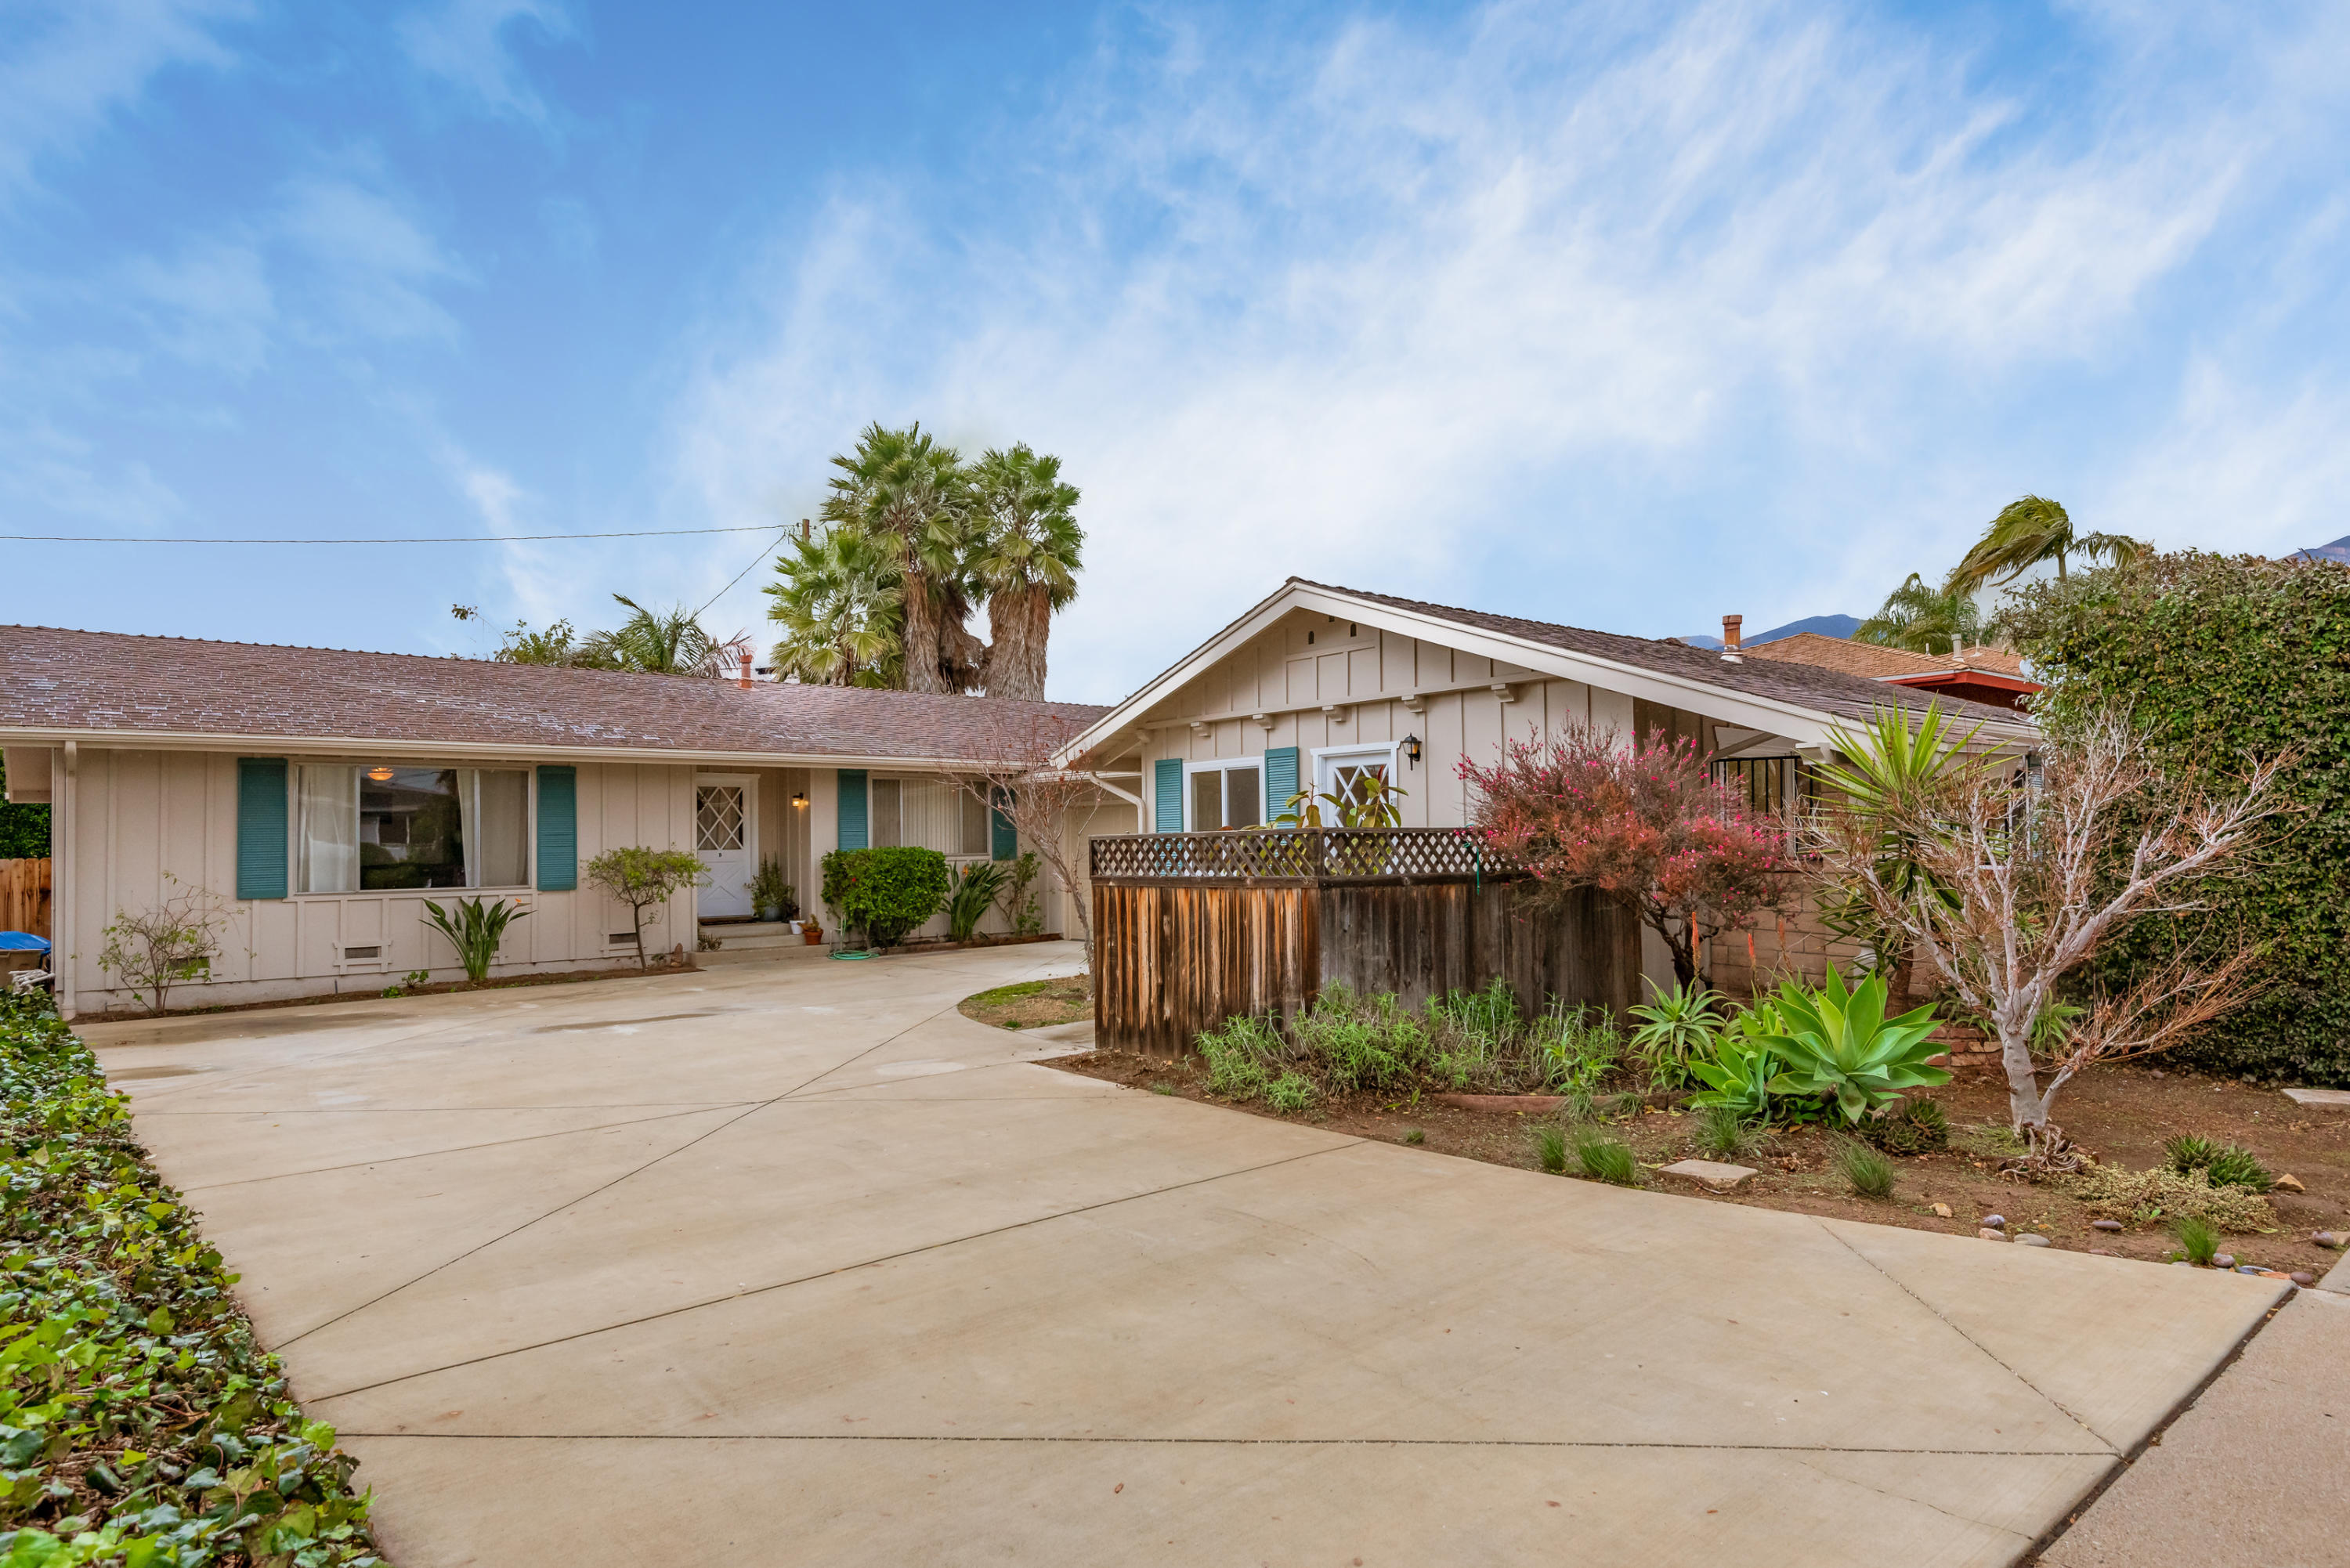 Property photo for 339 Rosario Dr Santa Barbara, California 93110 - 19-168